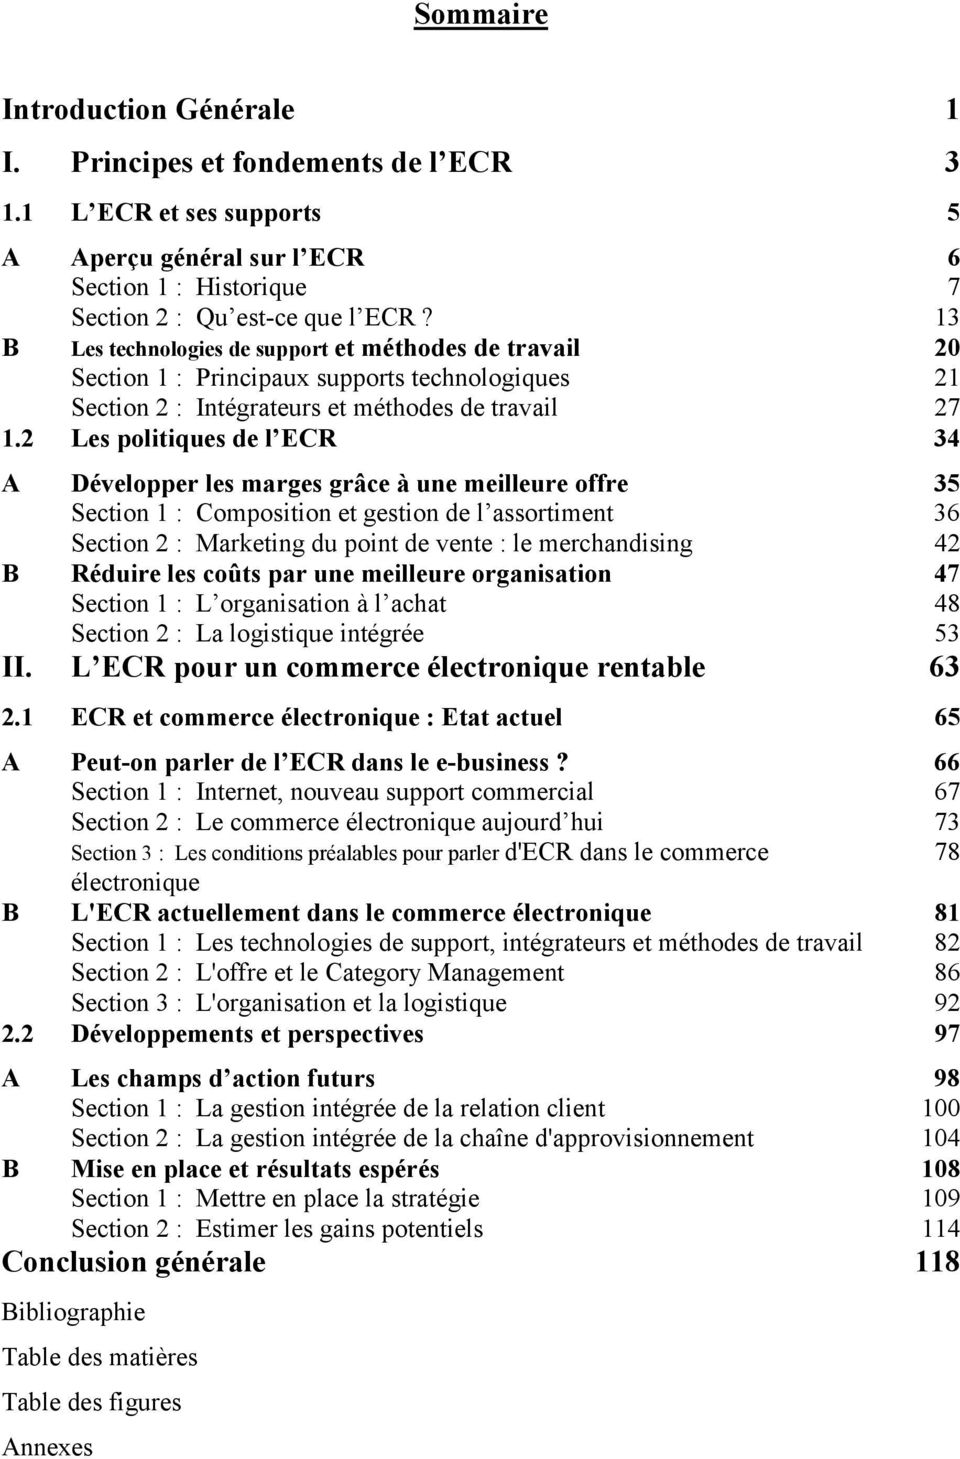 2 Les politiques de l ECR 34 A Développer les marges grâce à une meilleure offre 35 Section 1 : Composition et gestion de l assortiment 36 Section 2 : Marketing du point de vente : le merchandising